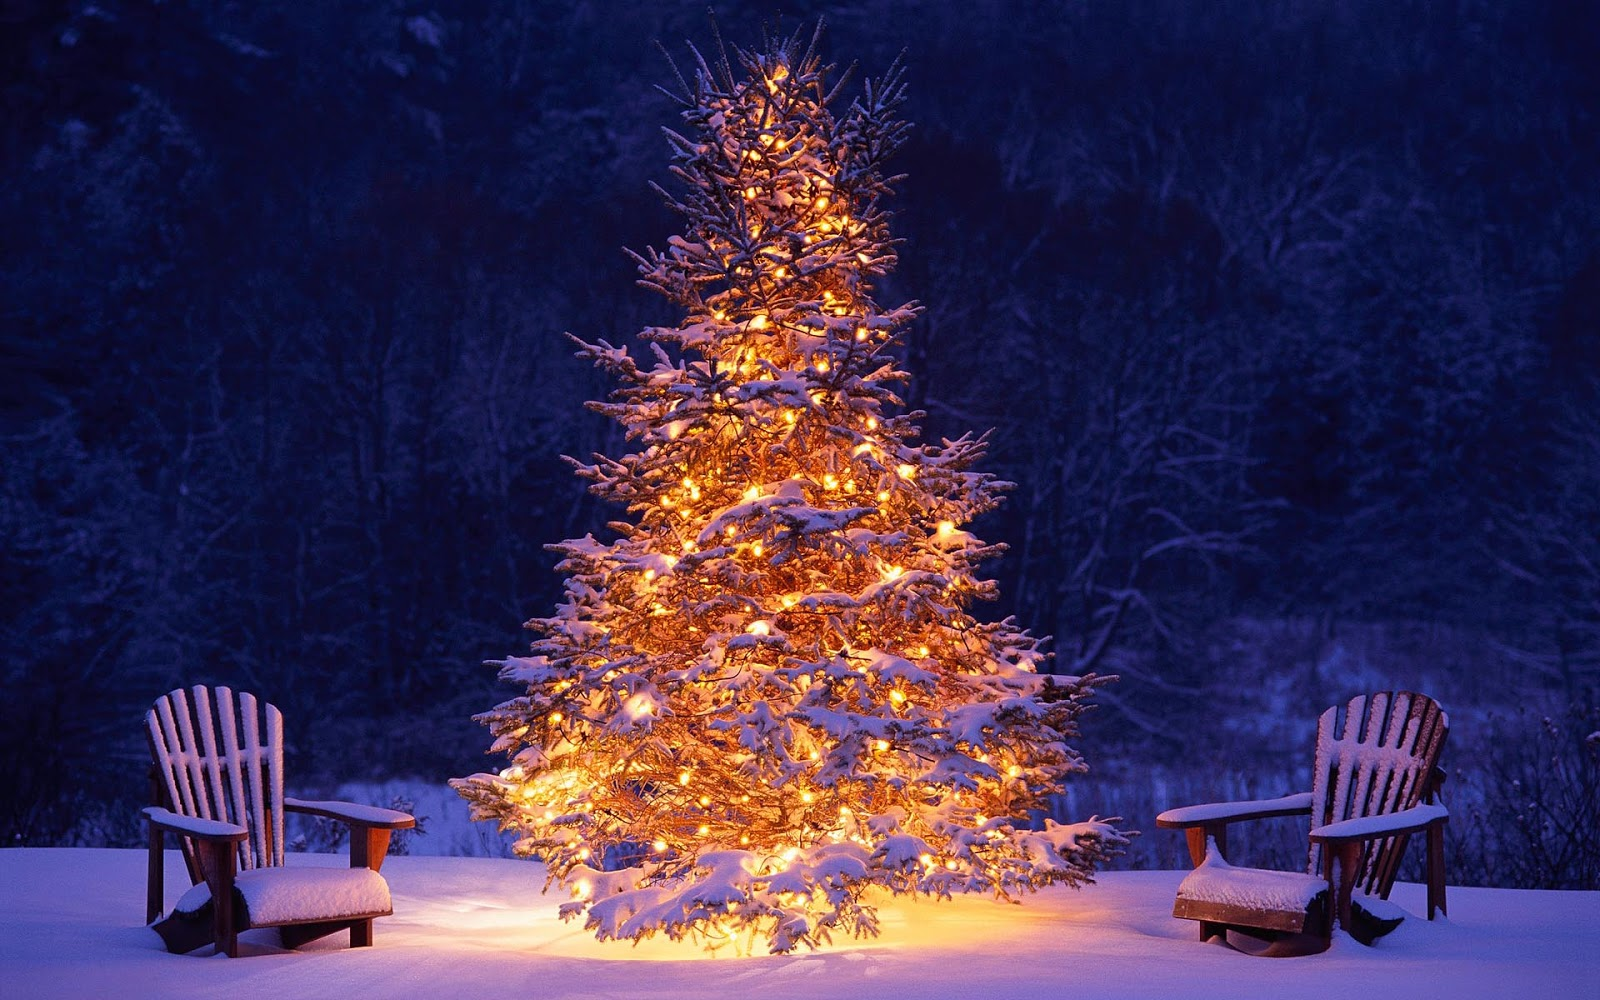 Christmas Tree Outside.Lighted Christmas Trees Outside In The Snow Free Hd